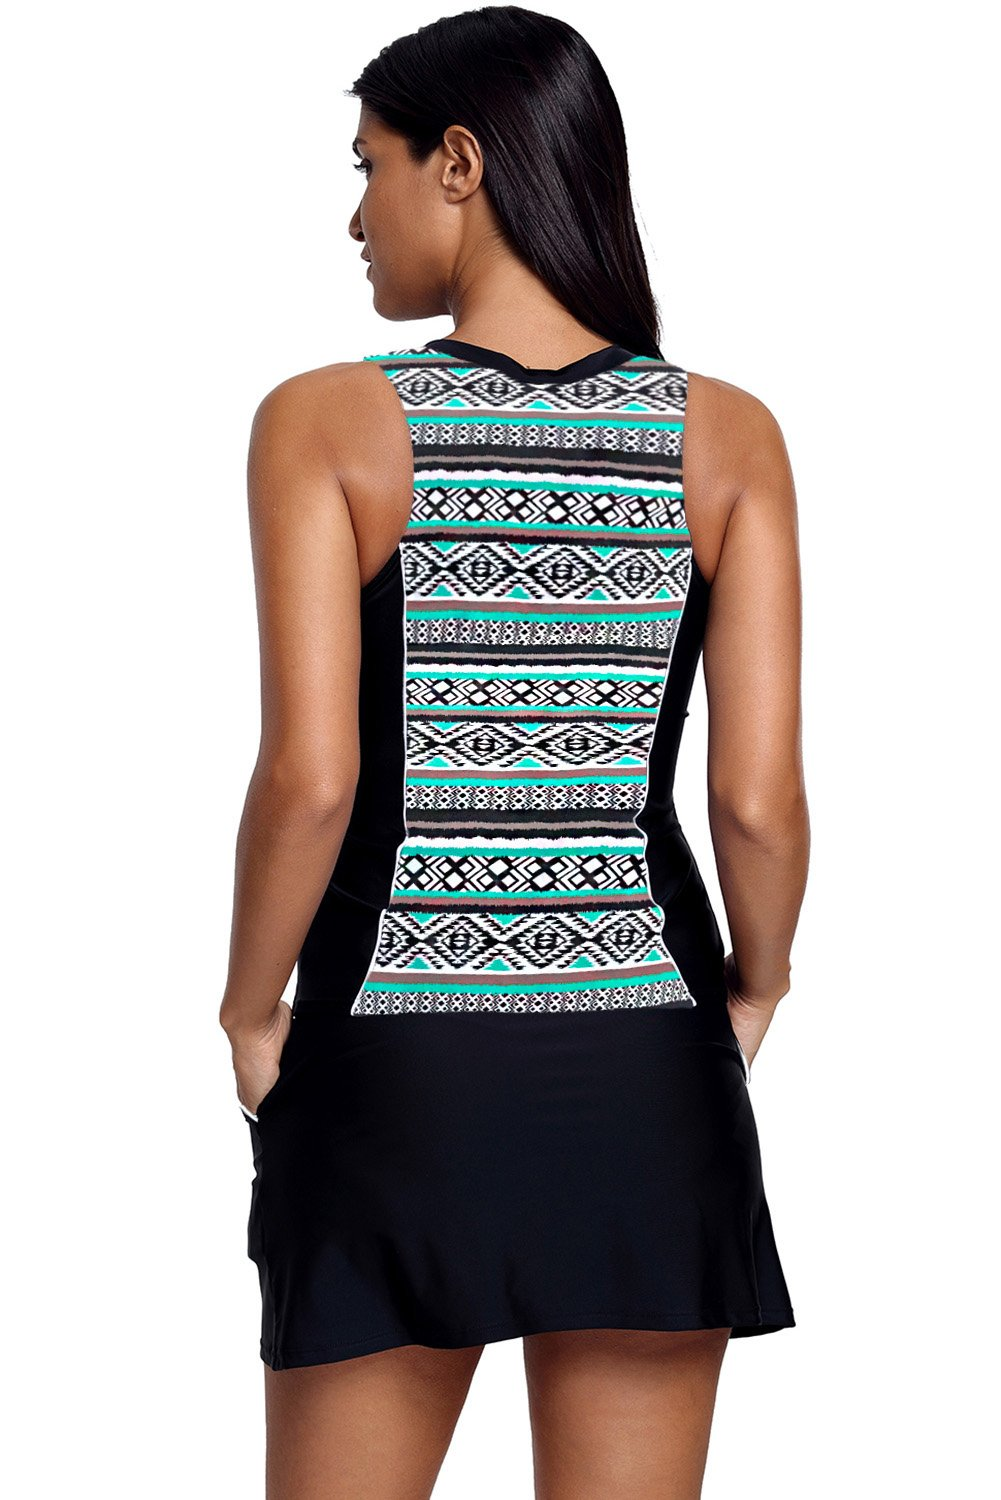 Green Tribal Print Zipper Up Skirtini Two Piece Swimsuit